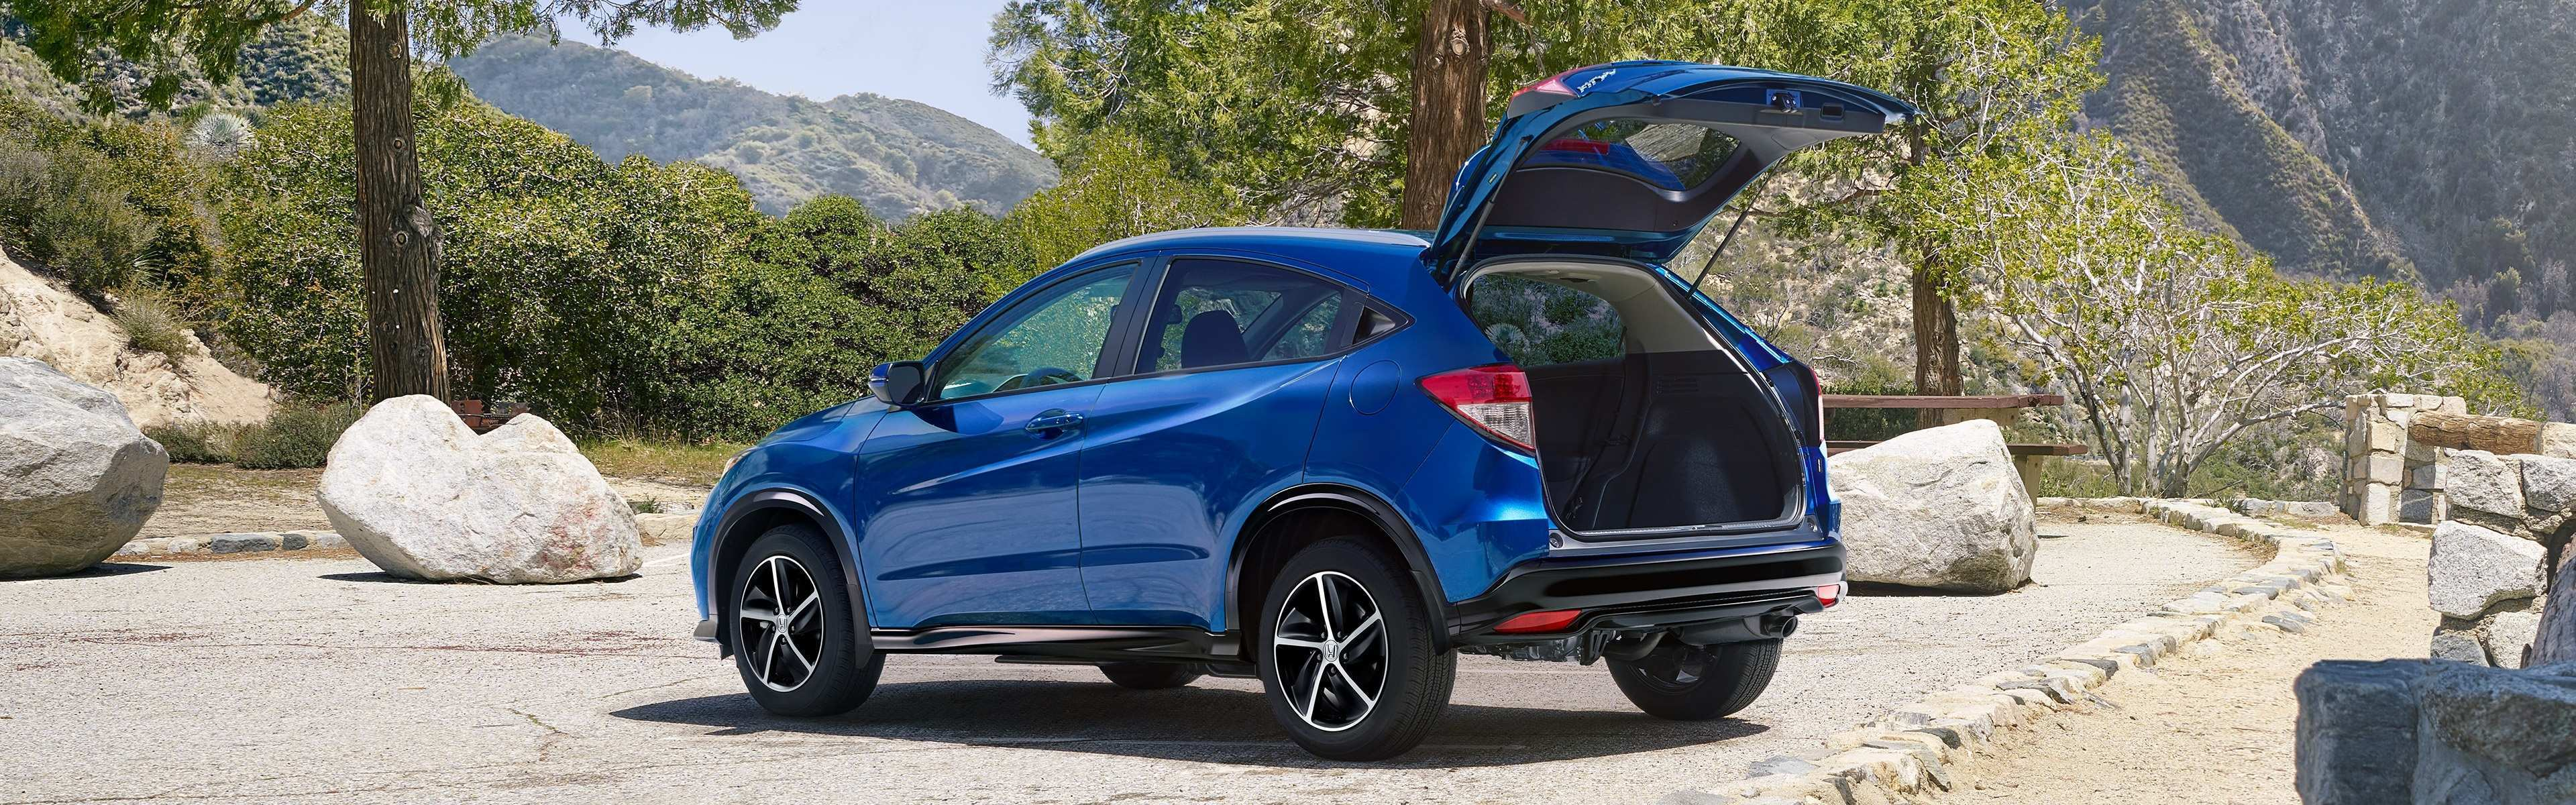 78 All New The Honda Hrv 2019 Canada Spy Shoot Rumors with The Honda Hrv 2019 Canada Spy Shoot